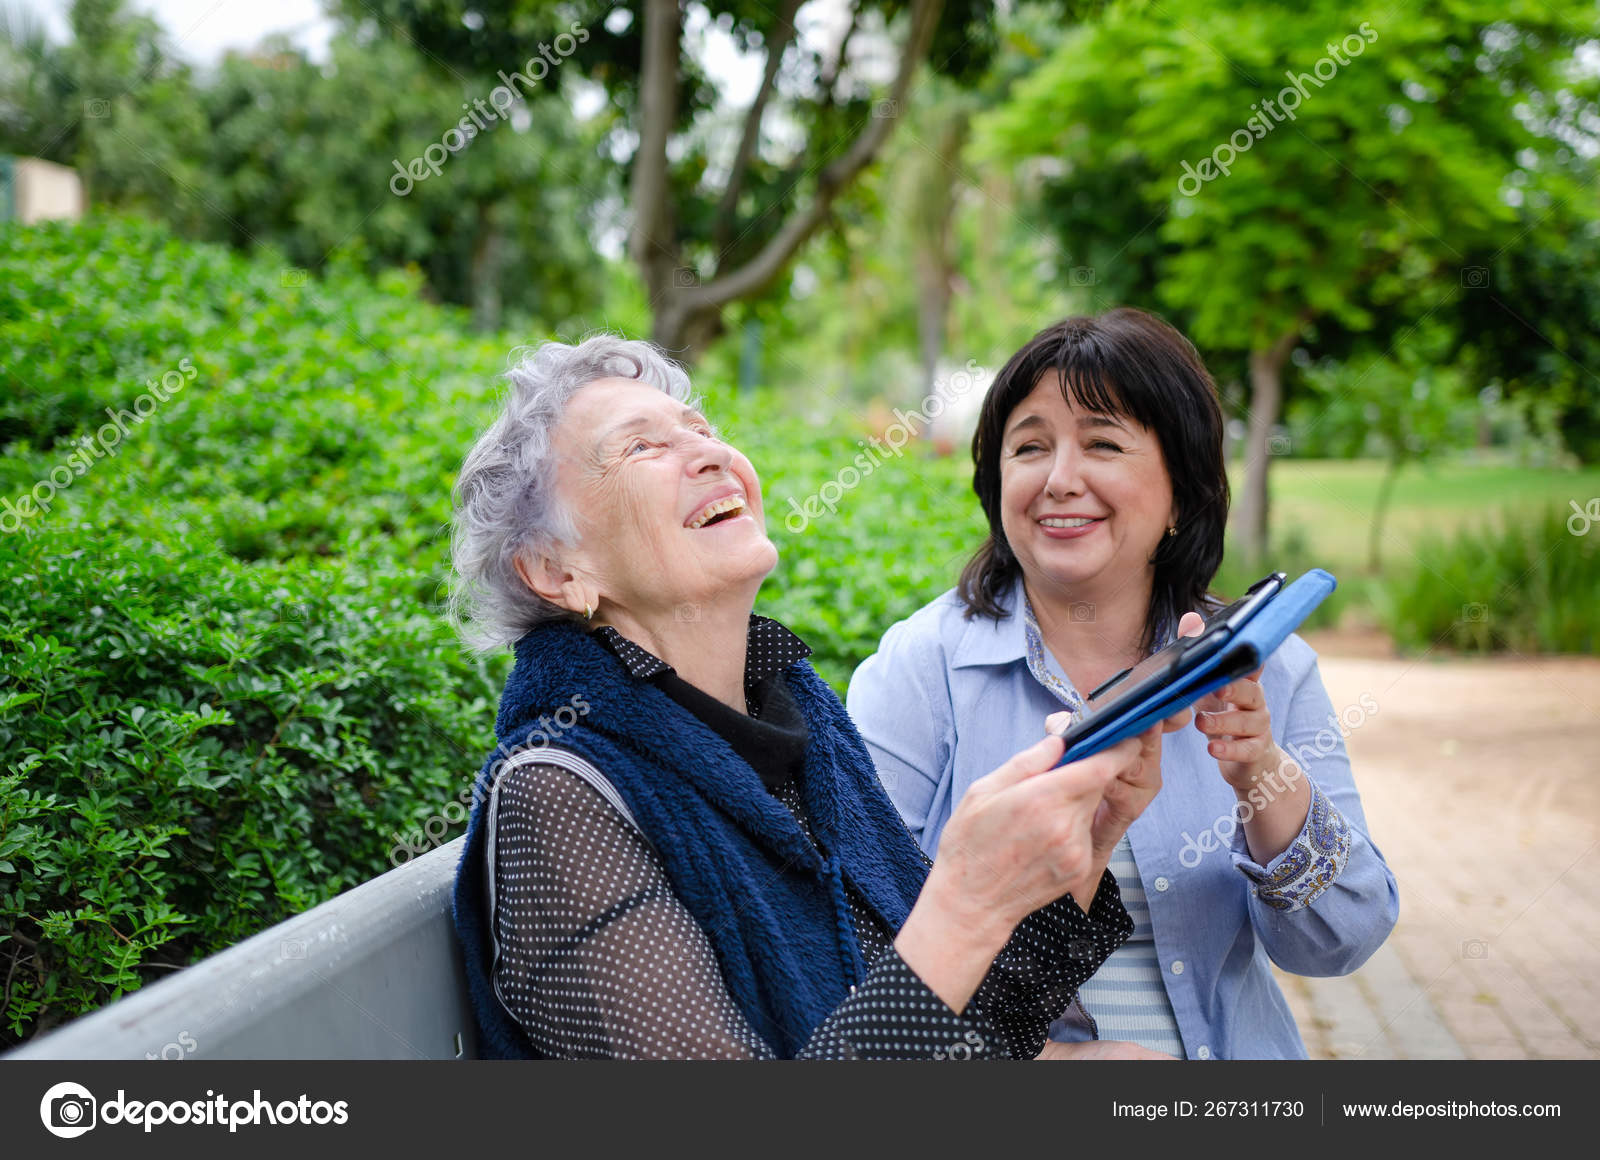 Female caregiver successfully teaches a senior woman to use a tablet sitting on a park bench